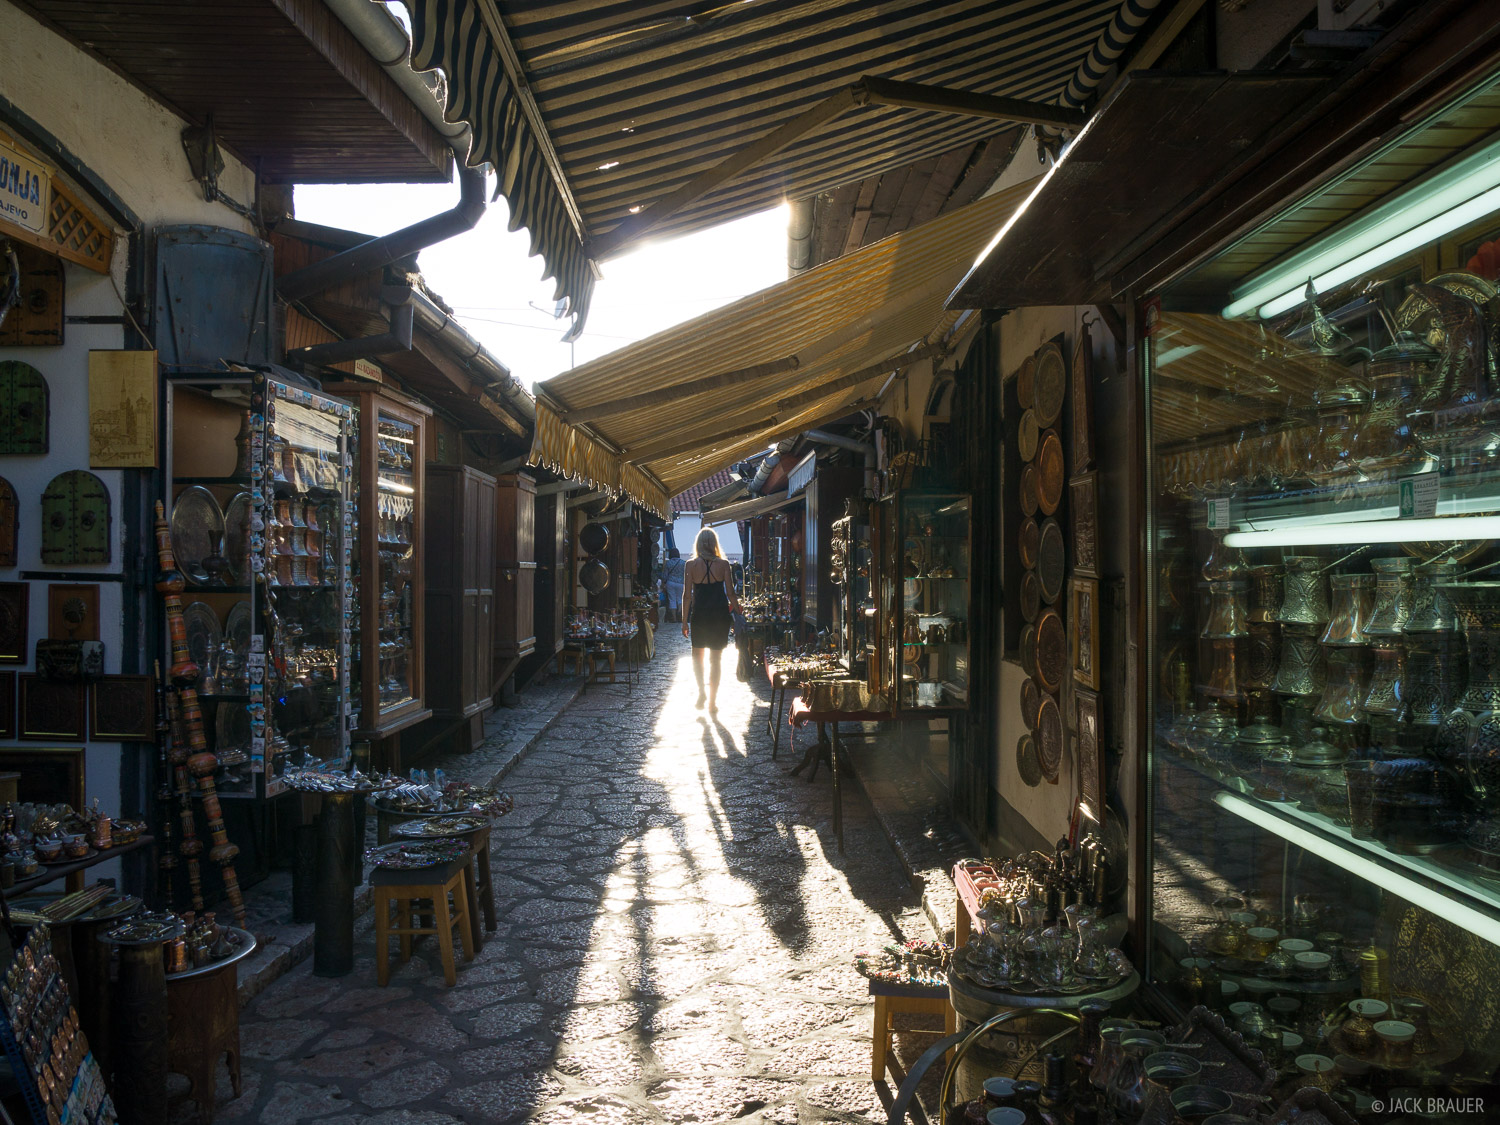 Strolling through a narrow alley of shops in the old town of Sarajevo.